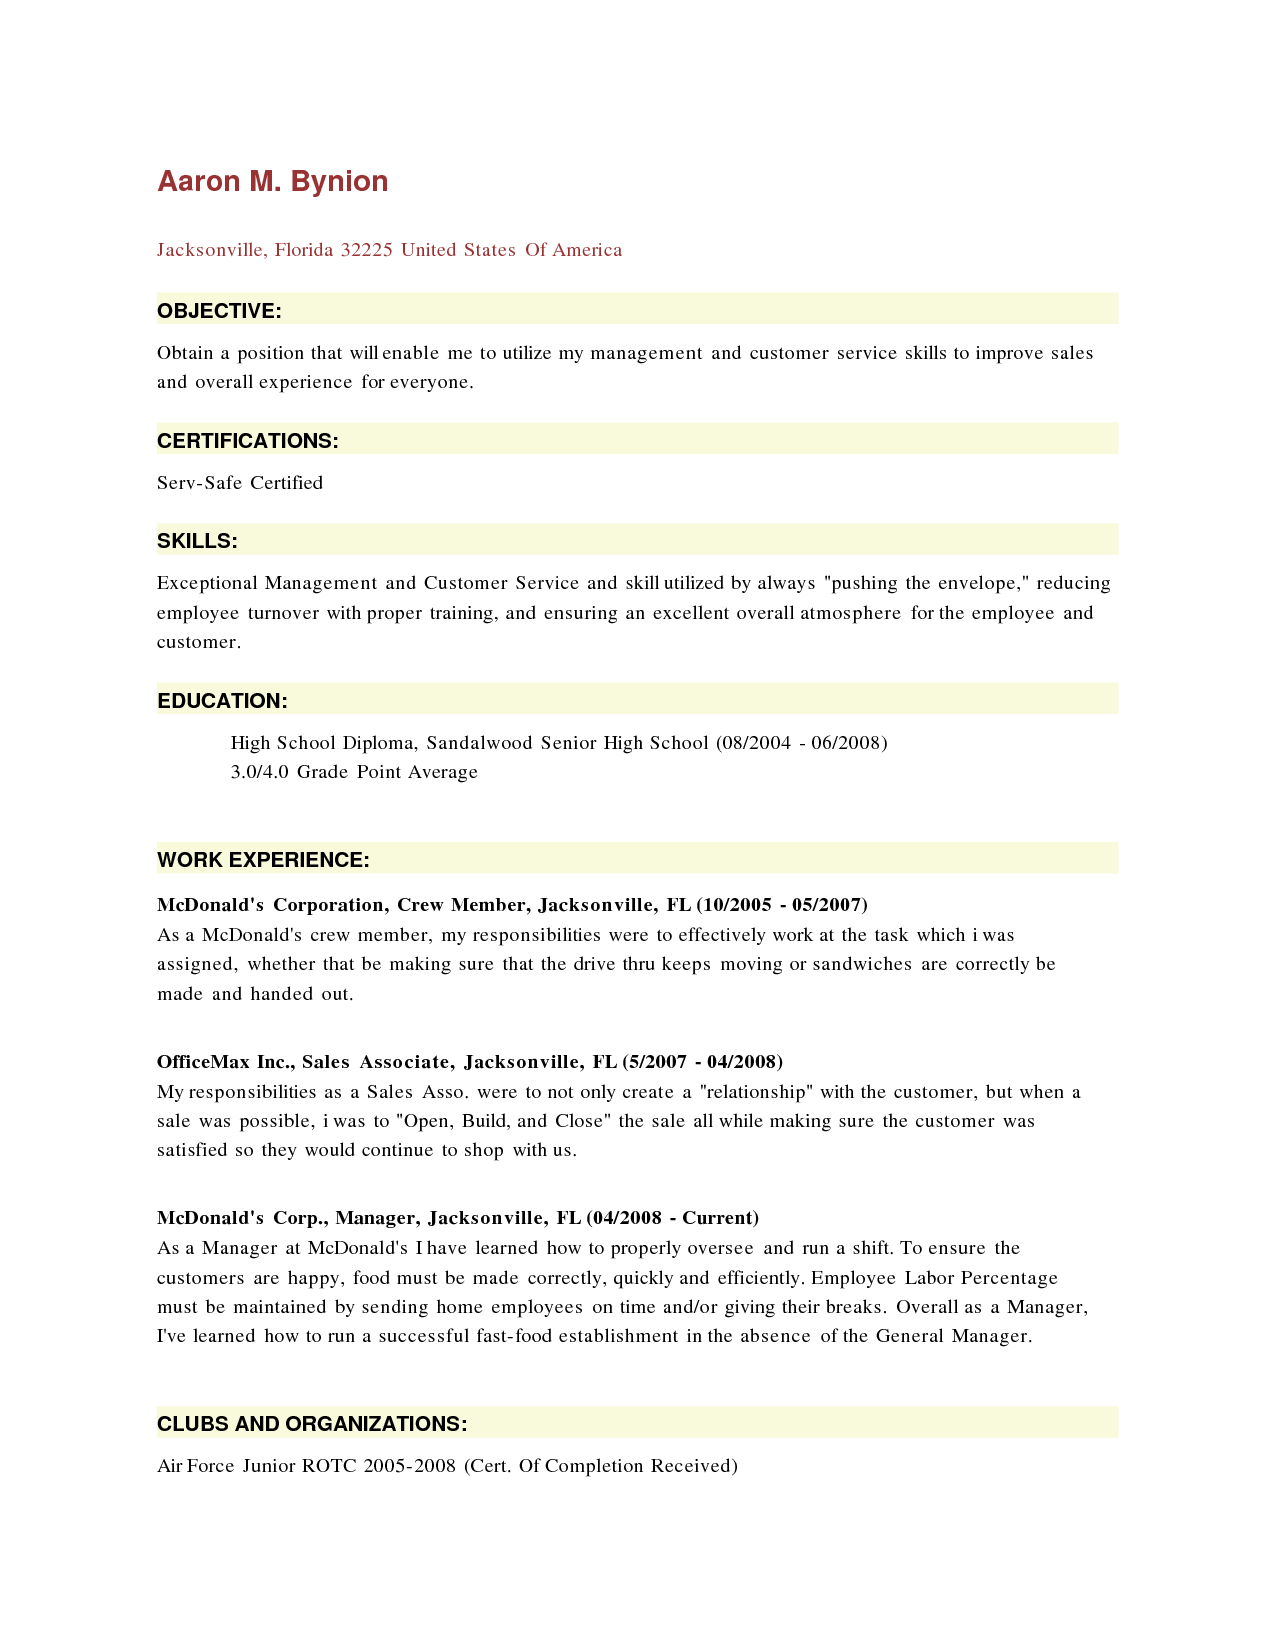 McDonalds Resume Resume description SampleBusinessResumecom